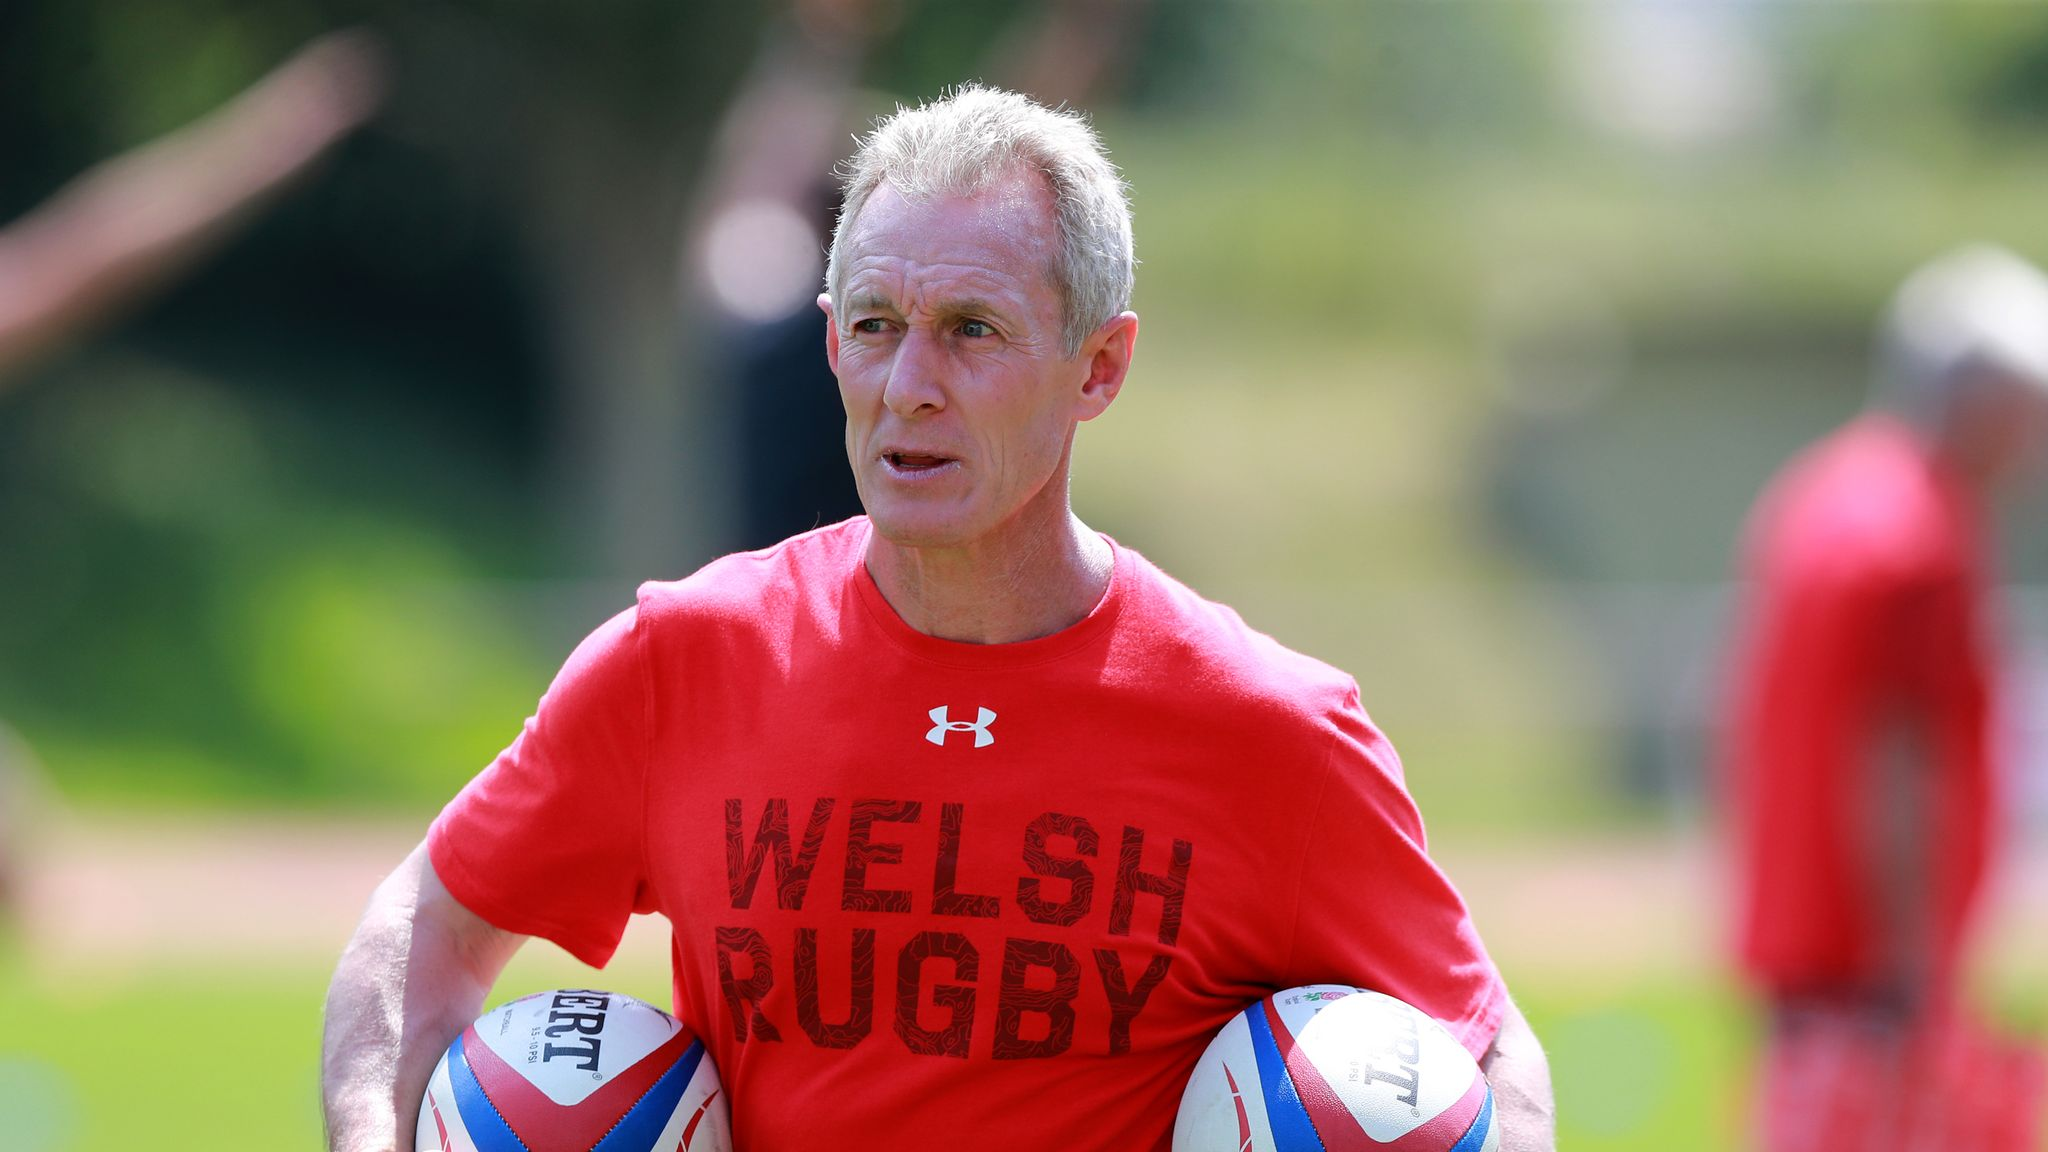 Robert Howley could be set for Wasps return after coaching ban expires